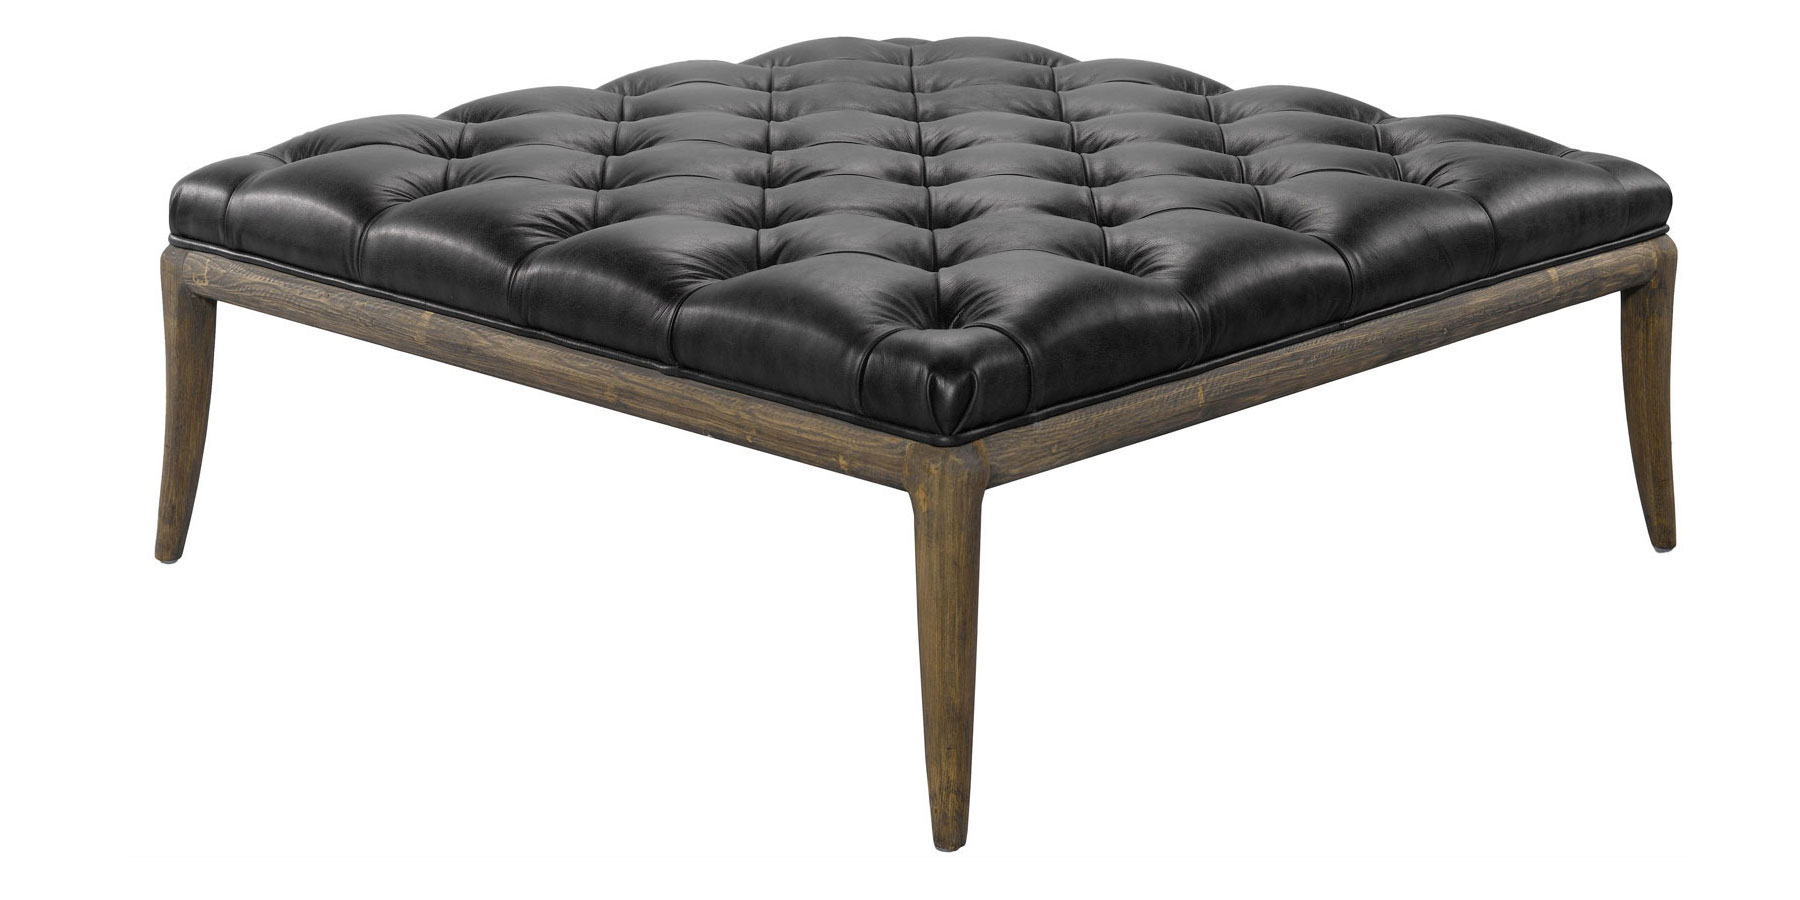 Titus Leather Tufted Bench Ottomans And Benches